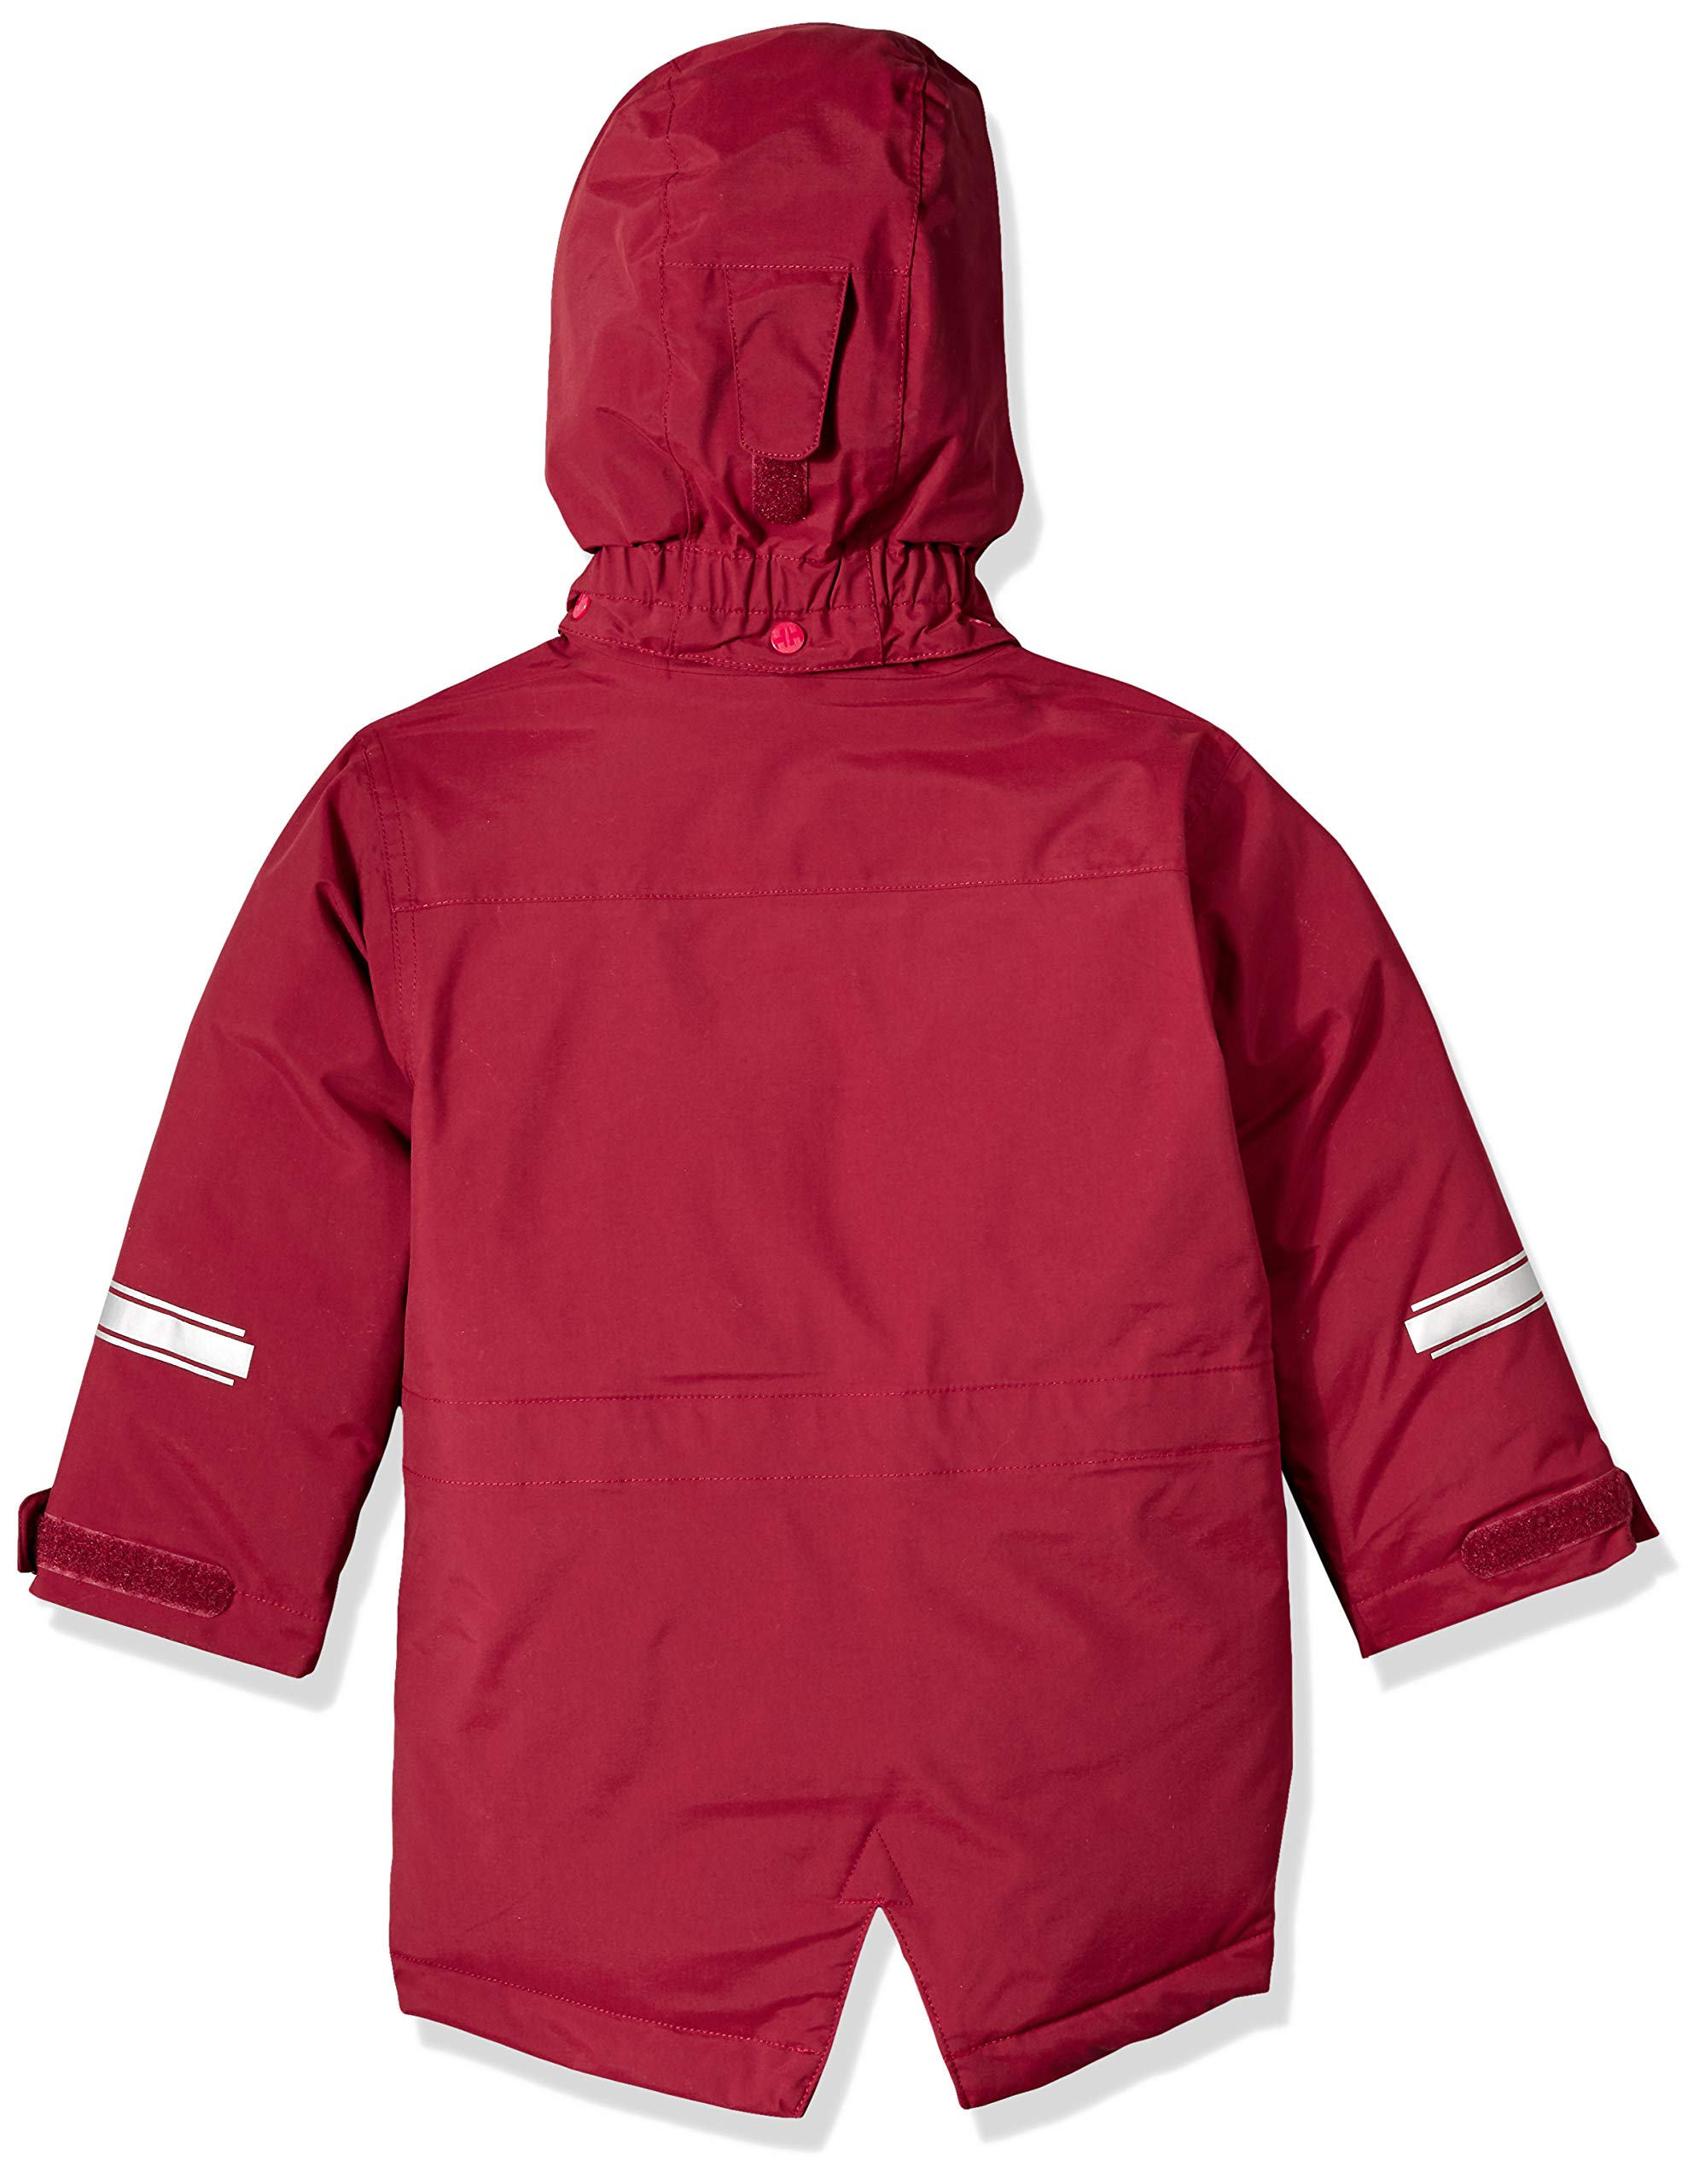 Helly Hansen K Isfjord Down Parka Jacket, Cabernet, Size 4 by Helly Hansen (Image #2)